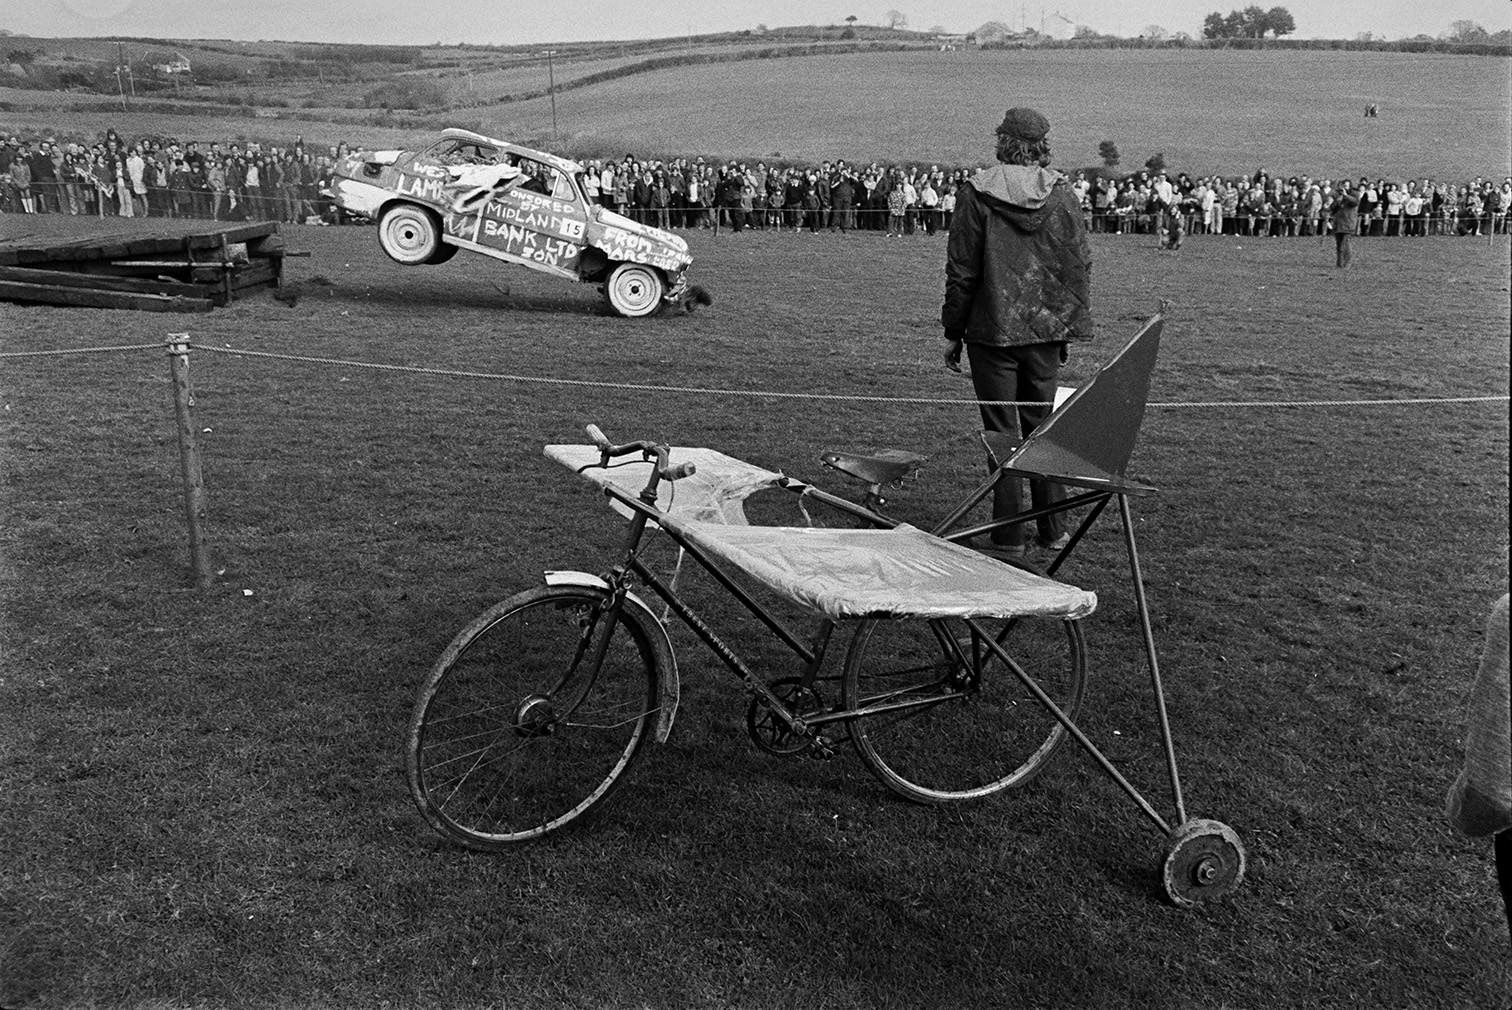 A'Man Powered Flight' competition in a field at Crowbeare. A person is watching a car trying to fly off a ramp. In the foreground an adapted bicycle with wings is waiting to compete.